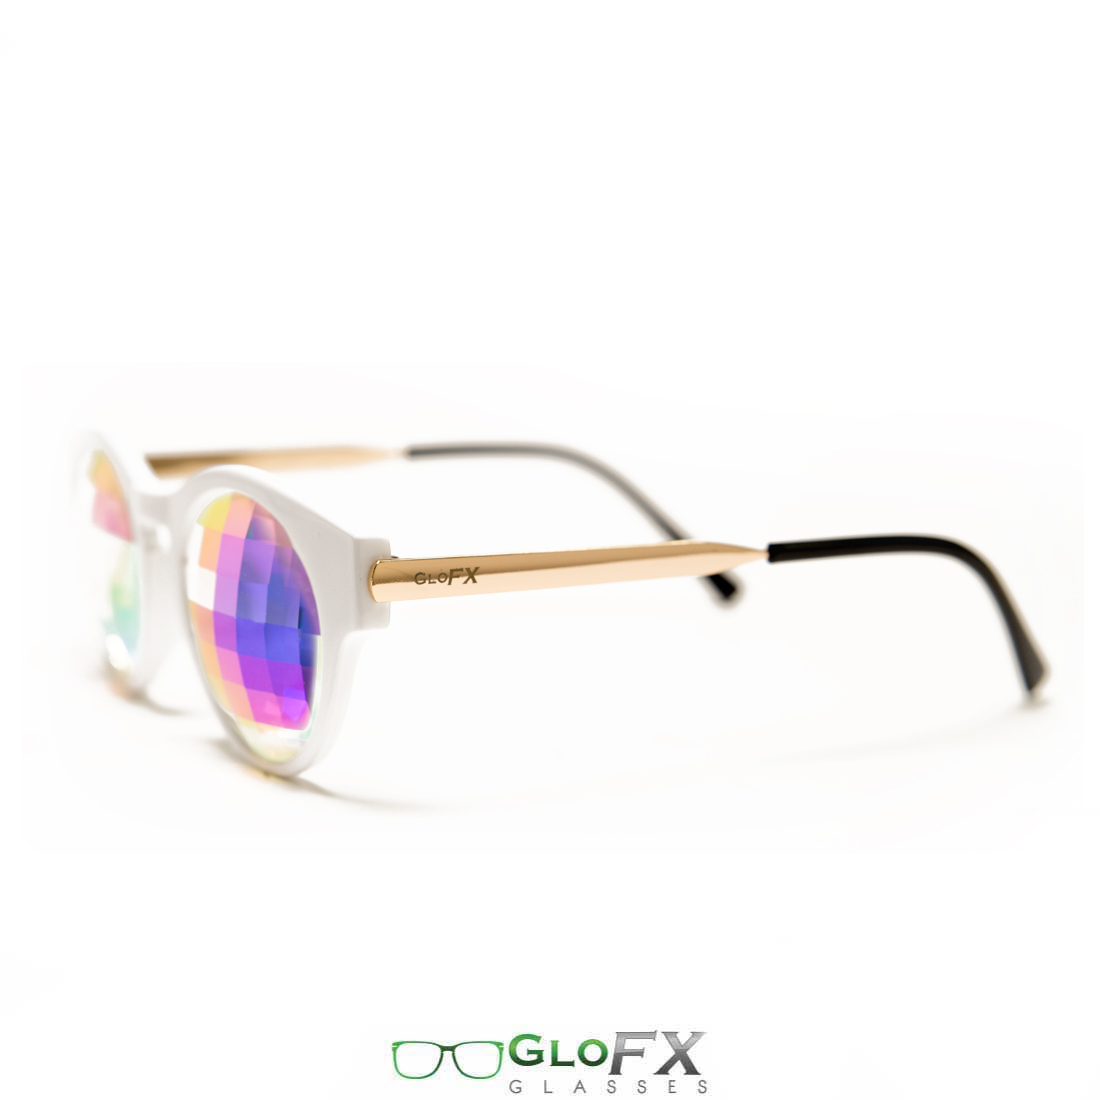 GloFX-Kaleidoscope-Glasses-with-Vintage-Look